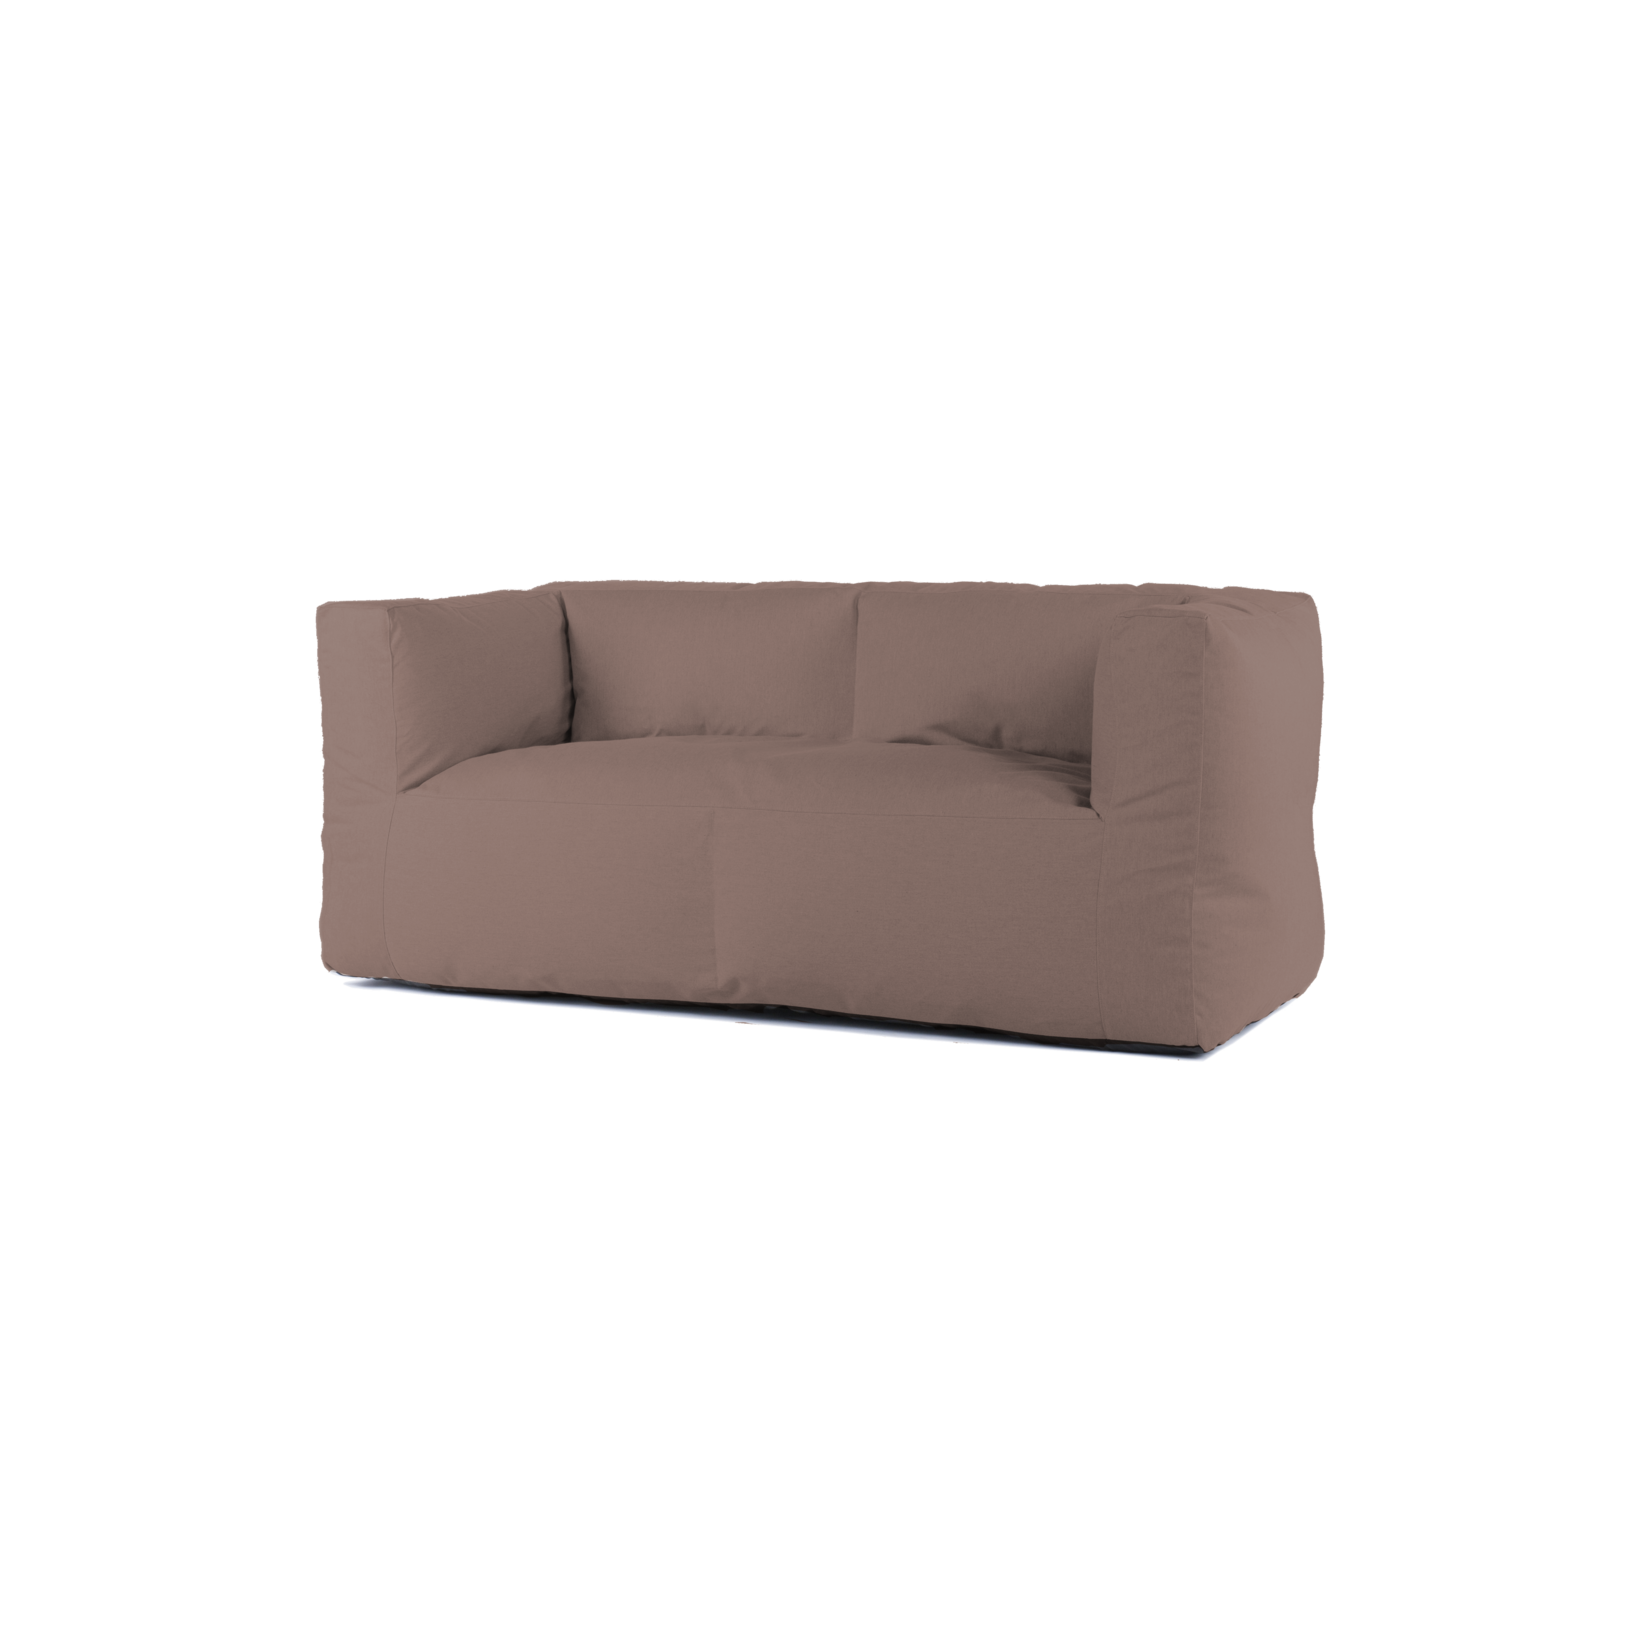 Bryck Bryck Couch   Two seat   SMOOTH COLLECTION